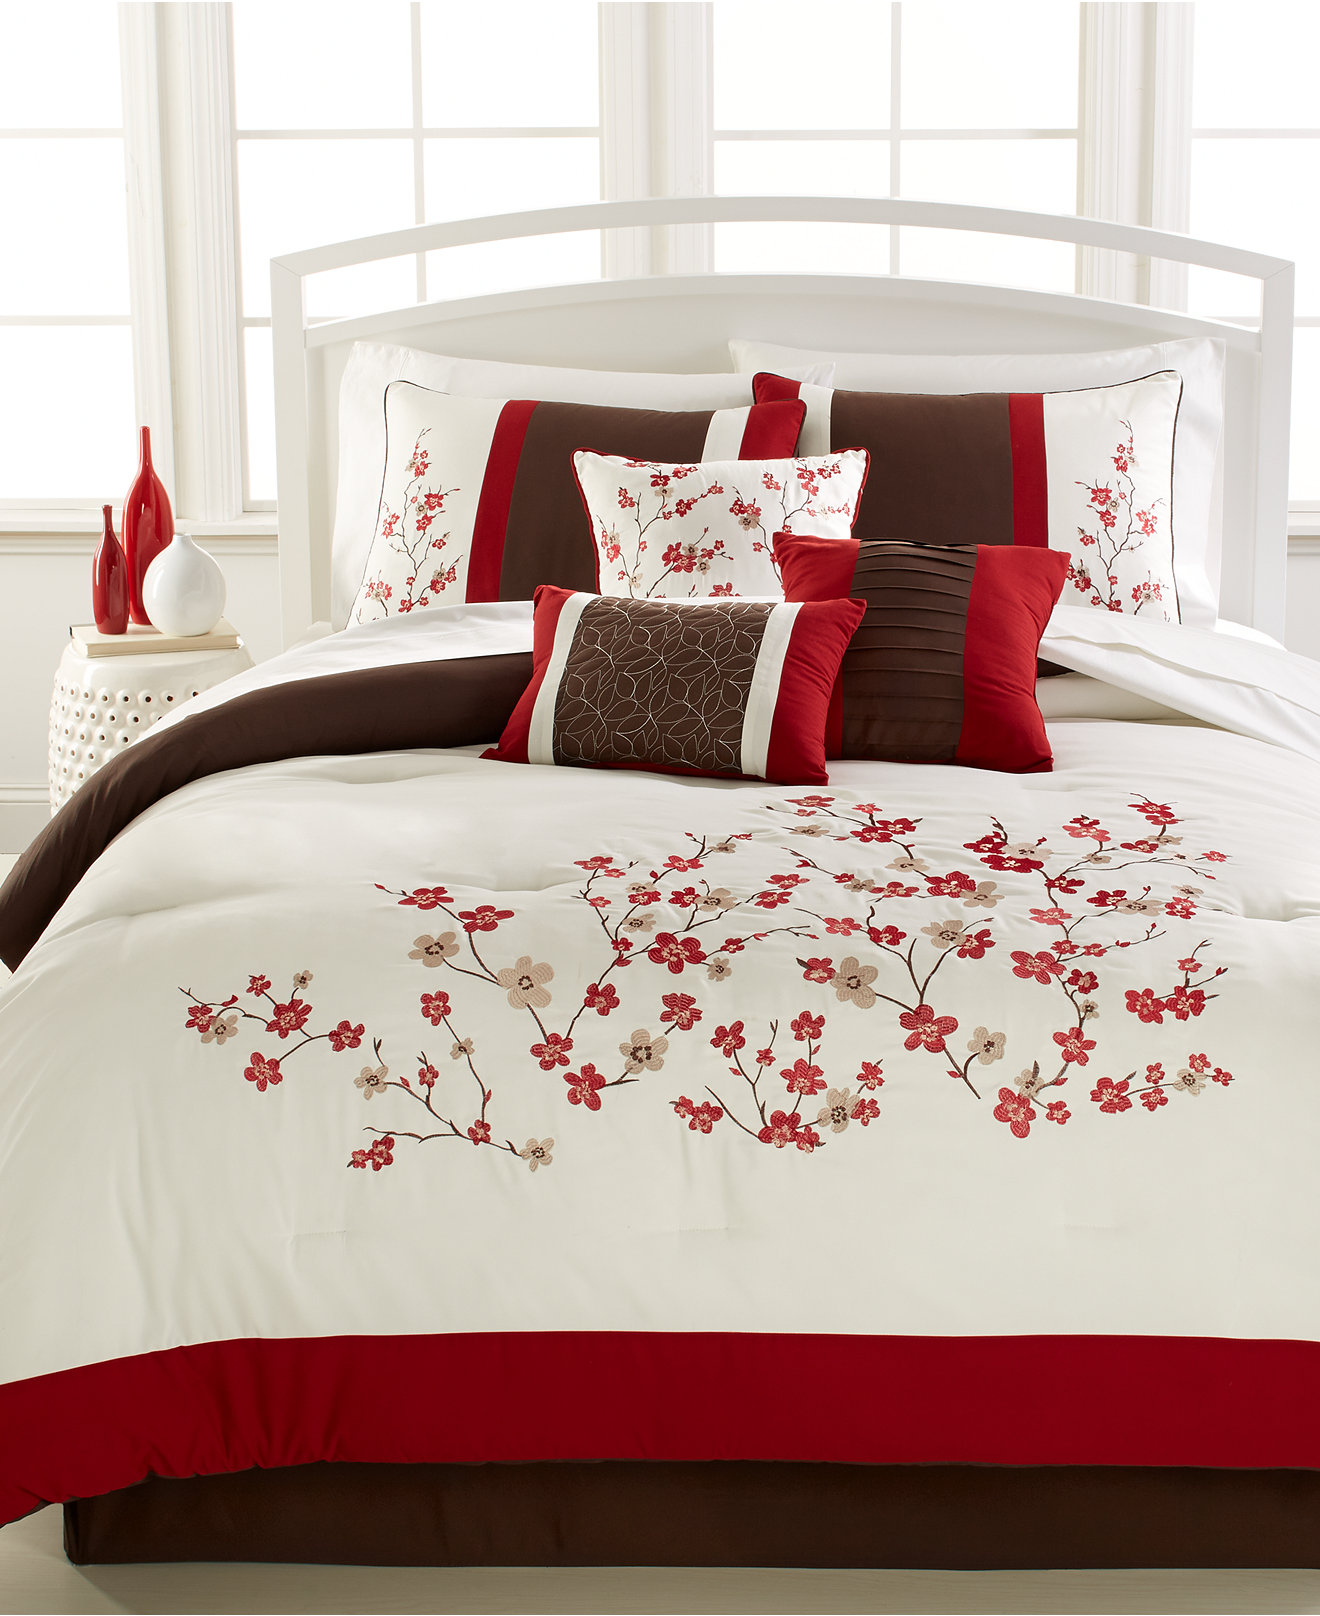 Extravagant full comforter sets Bed queen size and king bedsize also pillows and cushion combined with headboards and curtains